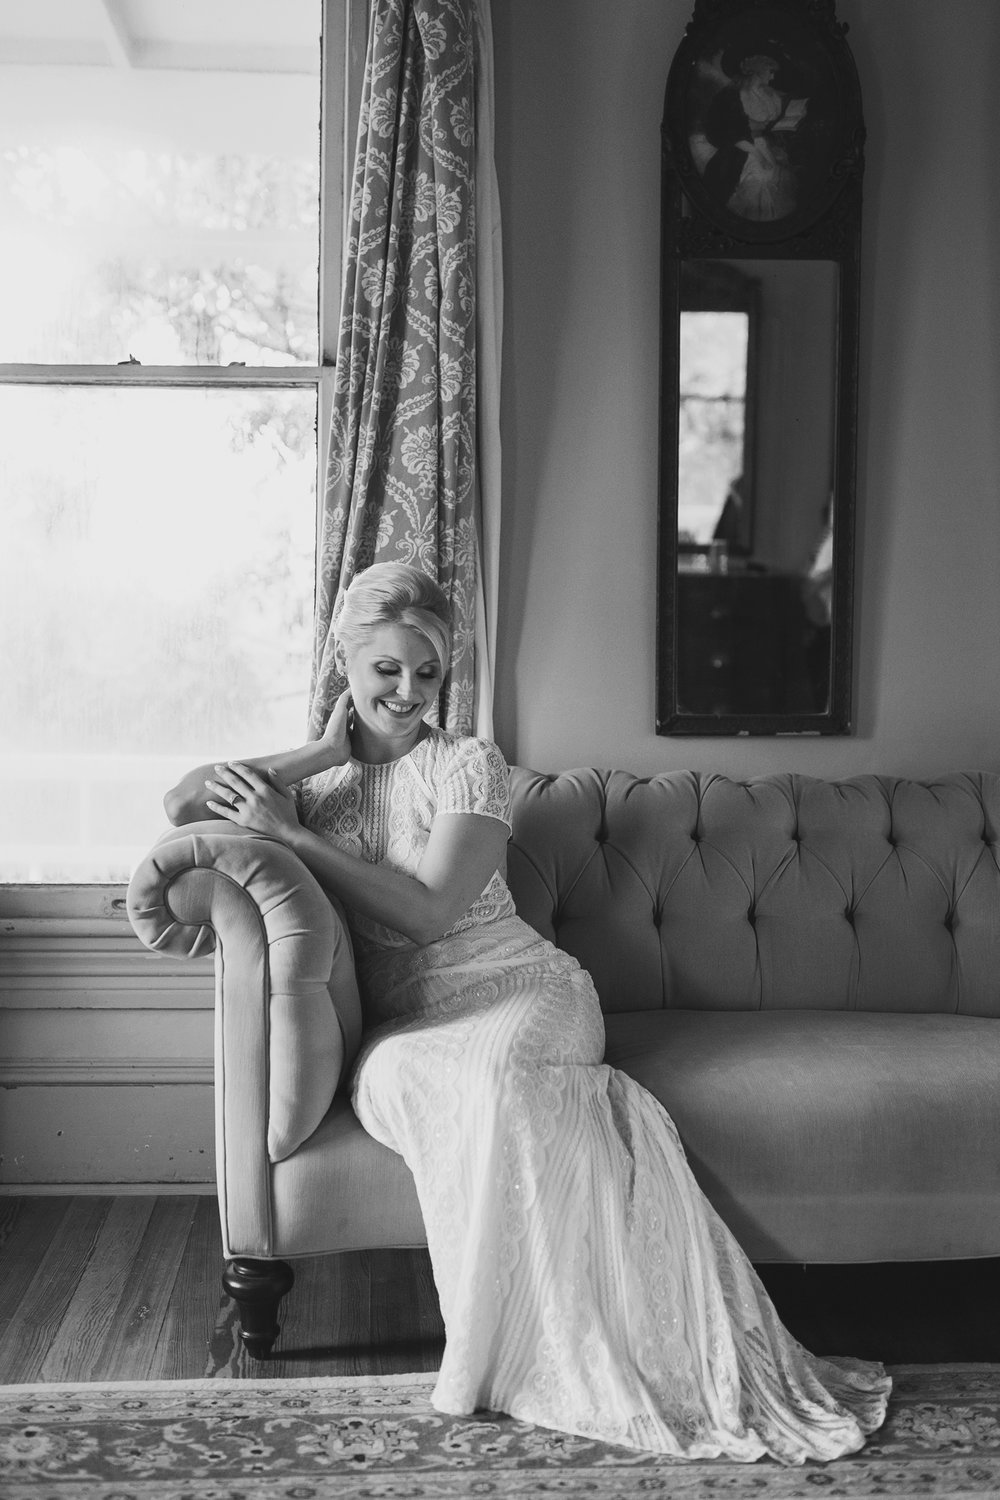 Austin_Wedding_Photographer_Kimberly_Brooke_Photographic_177.jpg